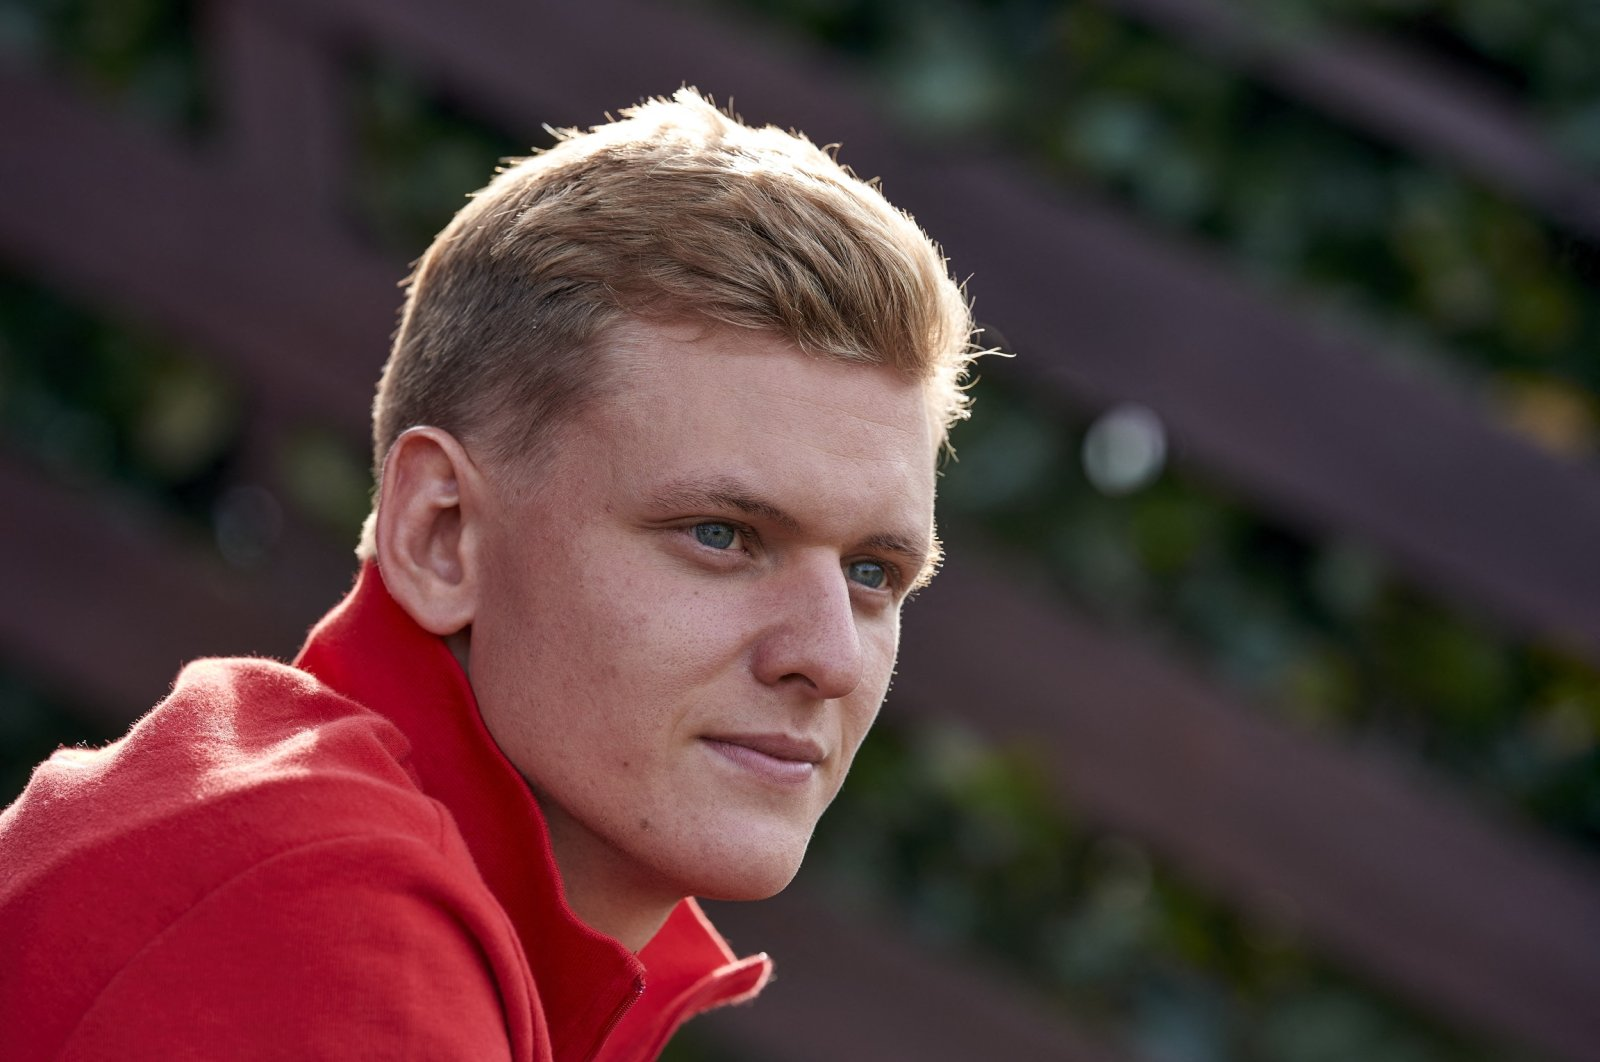 German racing driver Mick Schumacher at the Ferrari Driver Academy (FDA) in Maranello, Italy, Sept. 29, 2020. (AFP Photo)